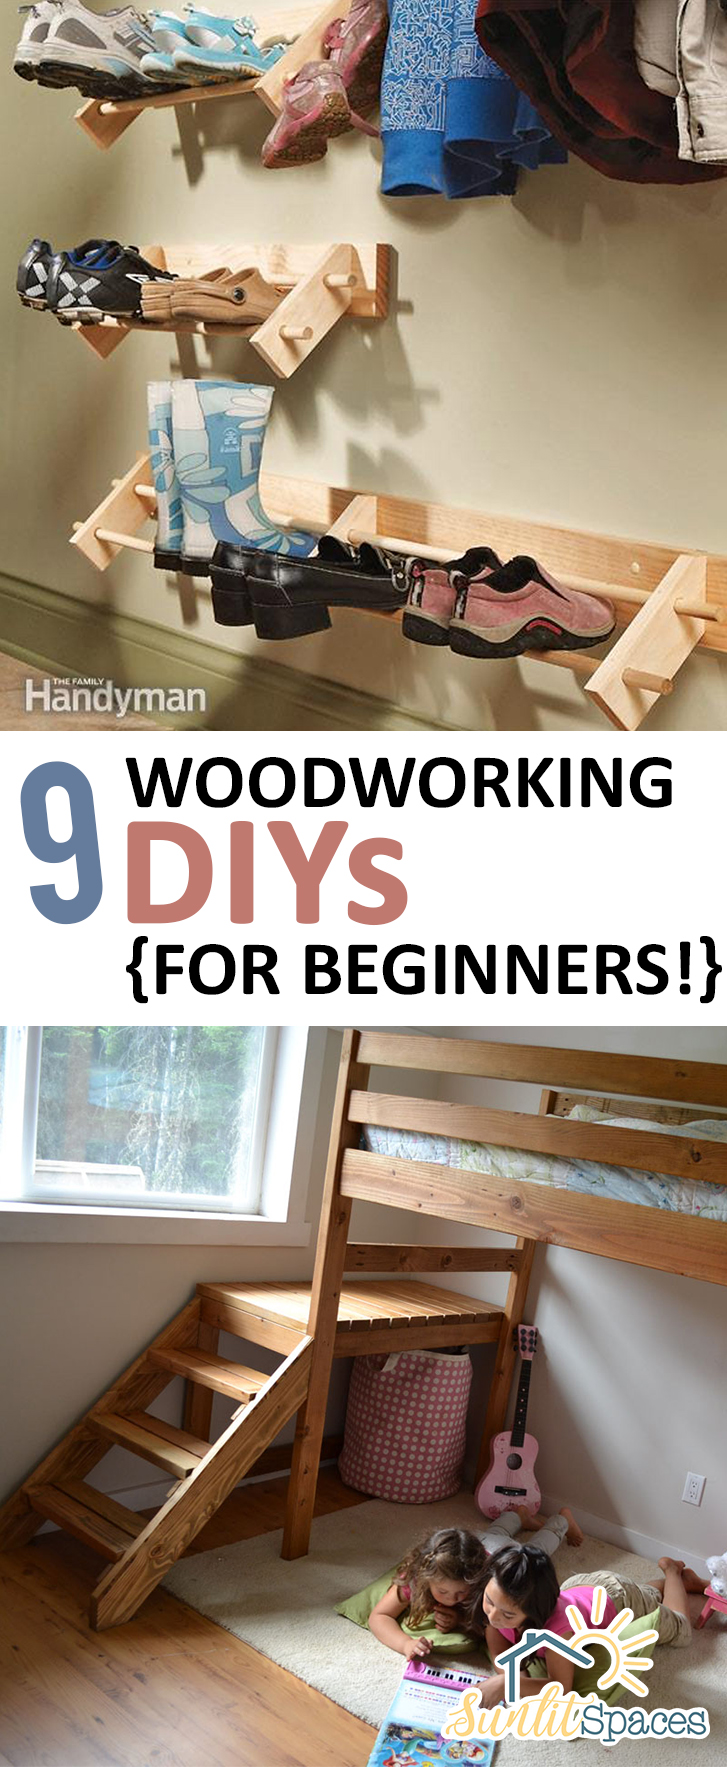 9 woodworking diys for beginners for Woodworking for beginners